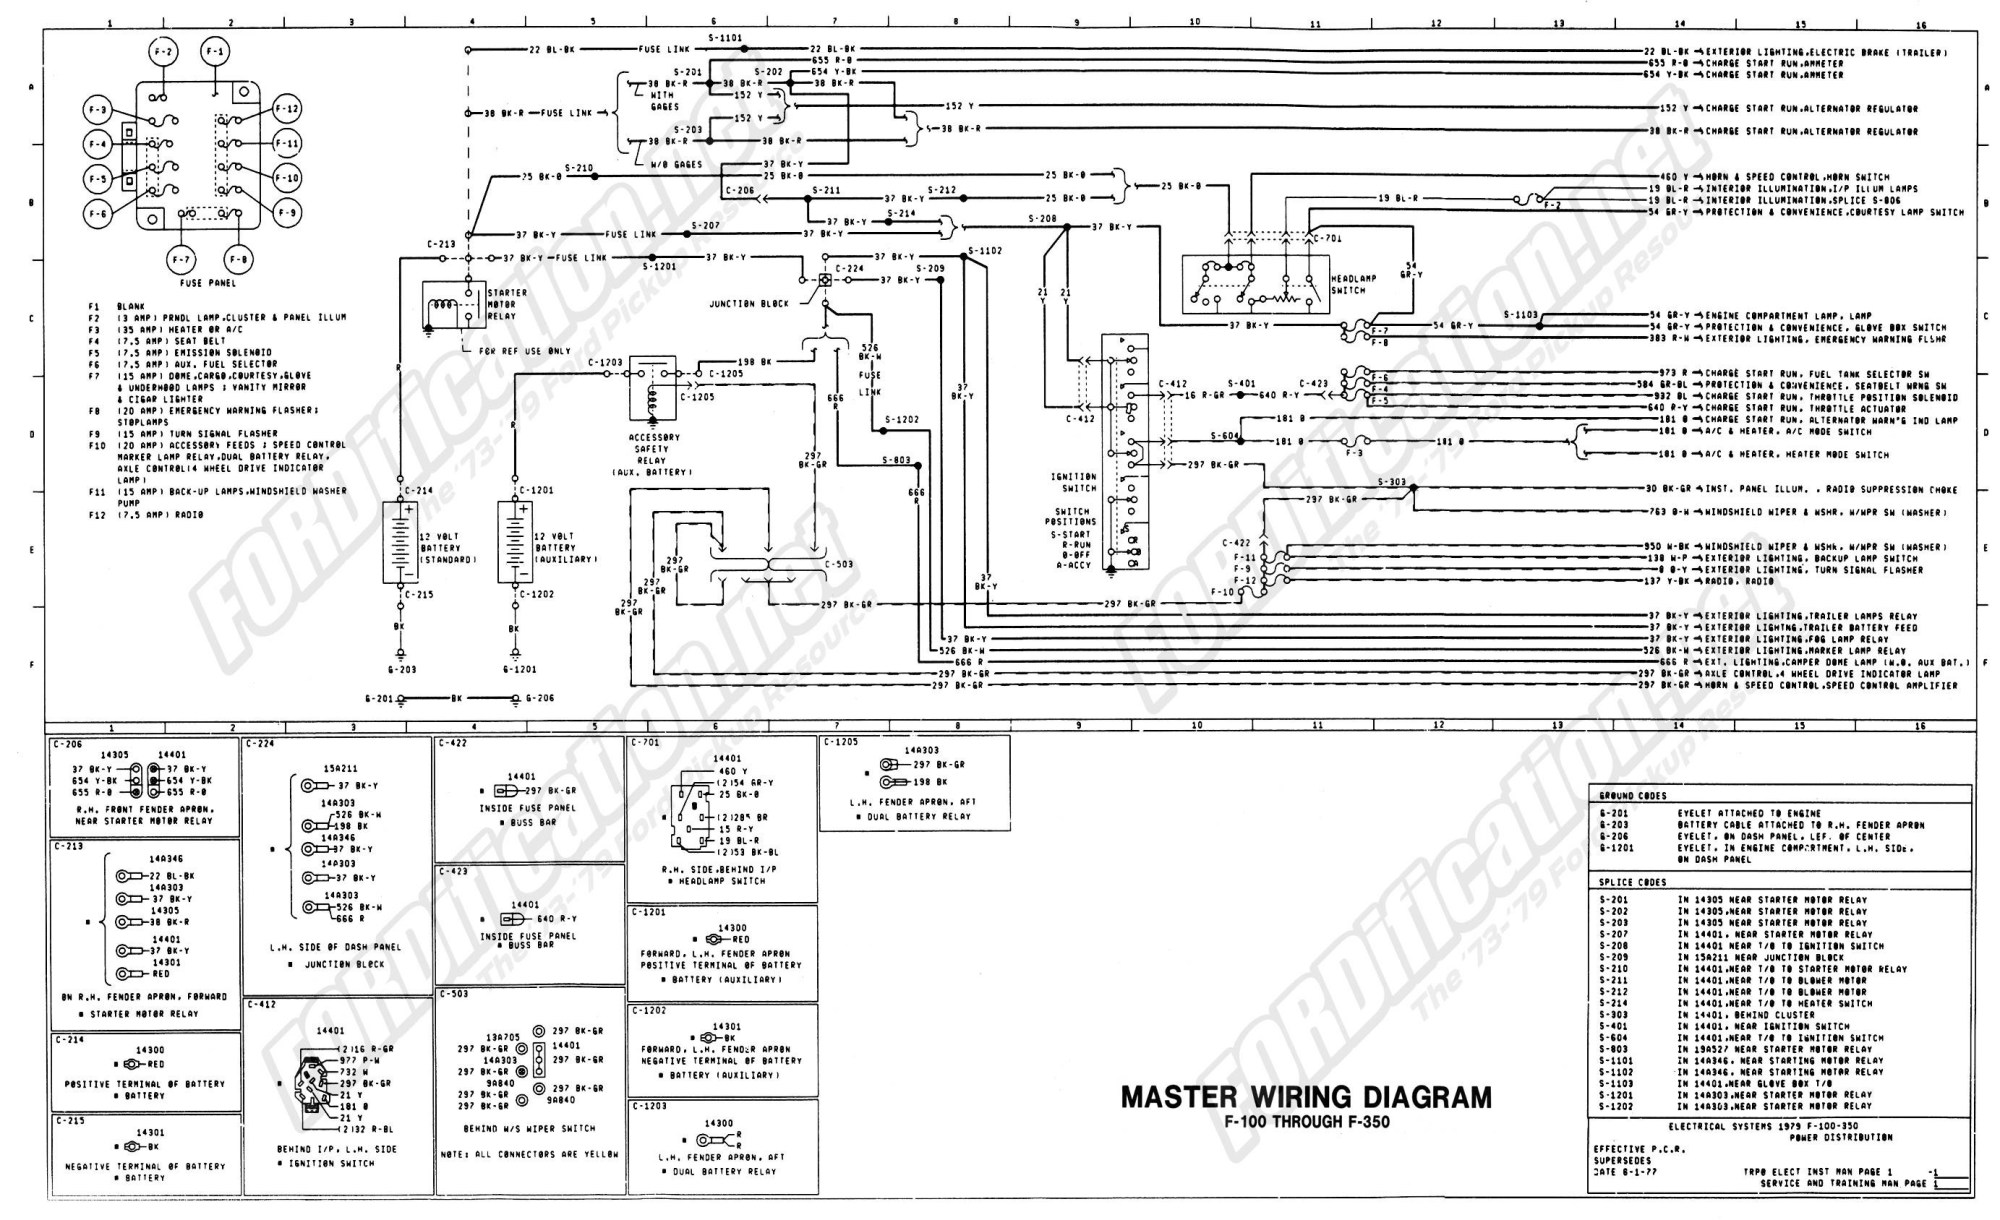 hight resolution of 1984 international s1900 truck wiring diagram wiring diagram third rh 5 5 15 jacobwinterstein com 1987 international s1900 wiring diagram 1985 international